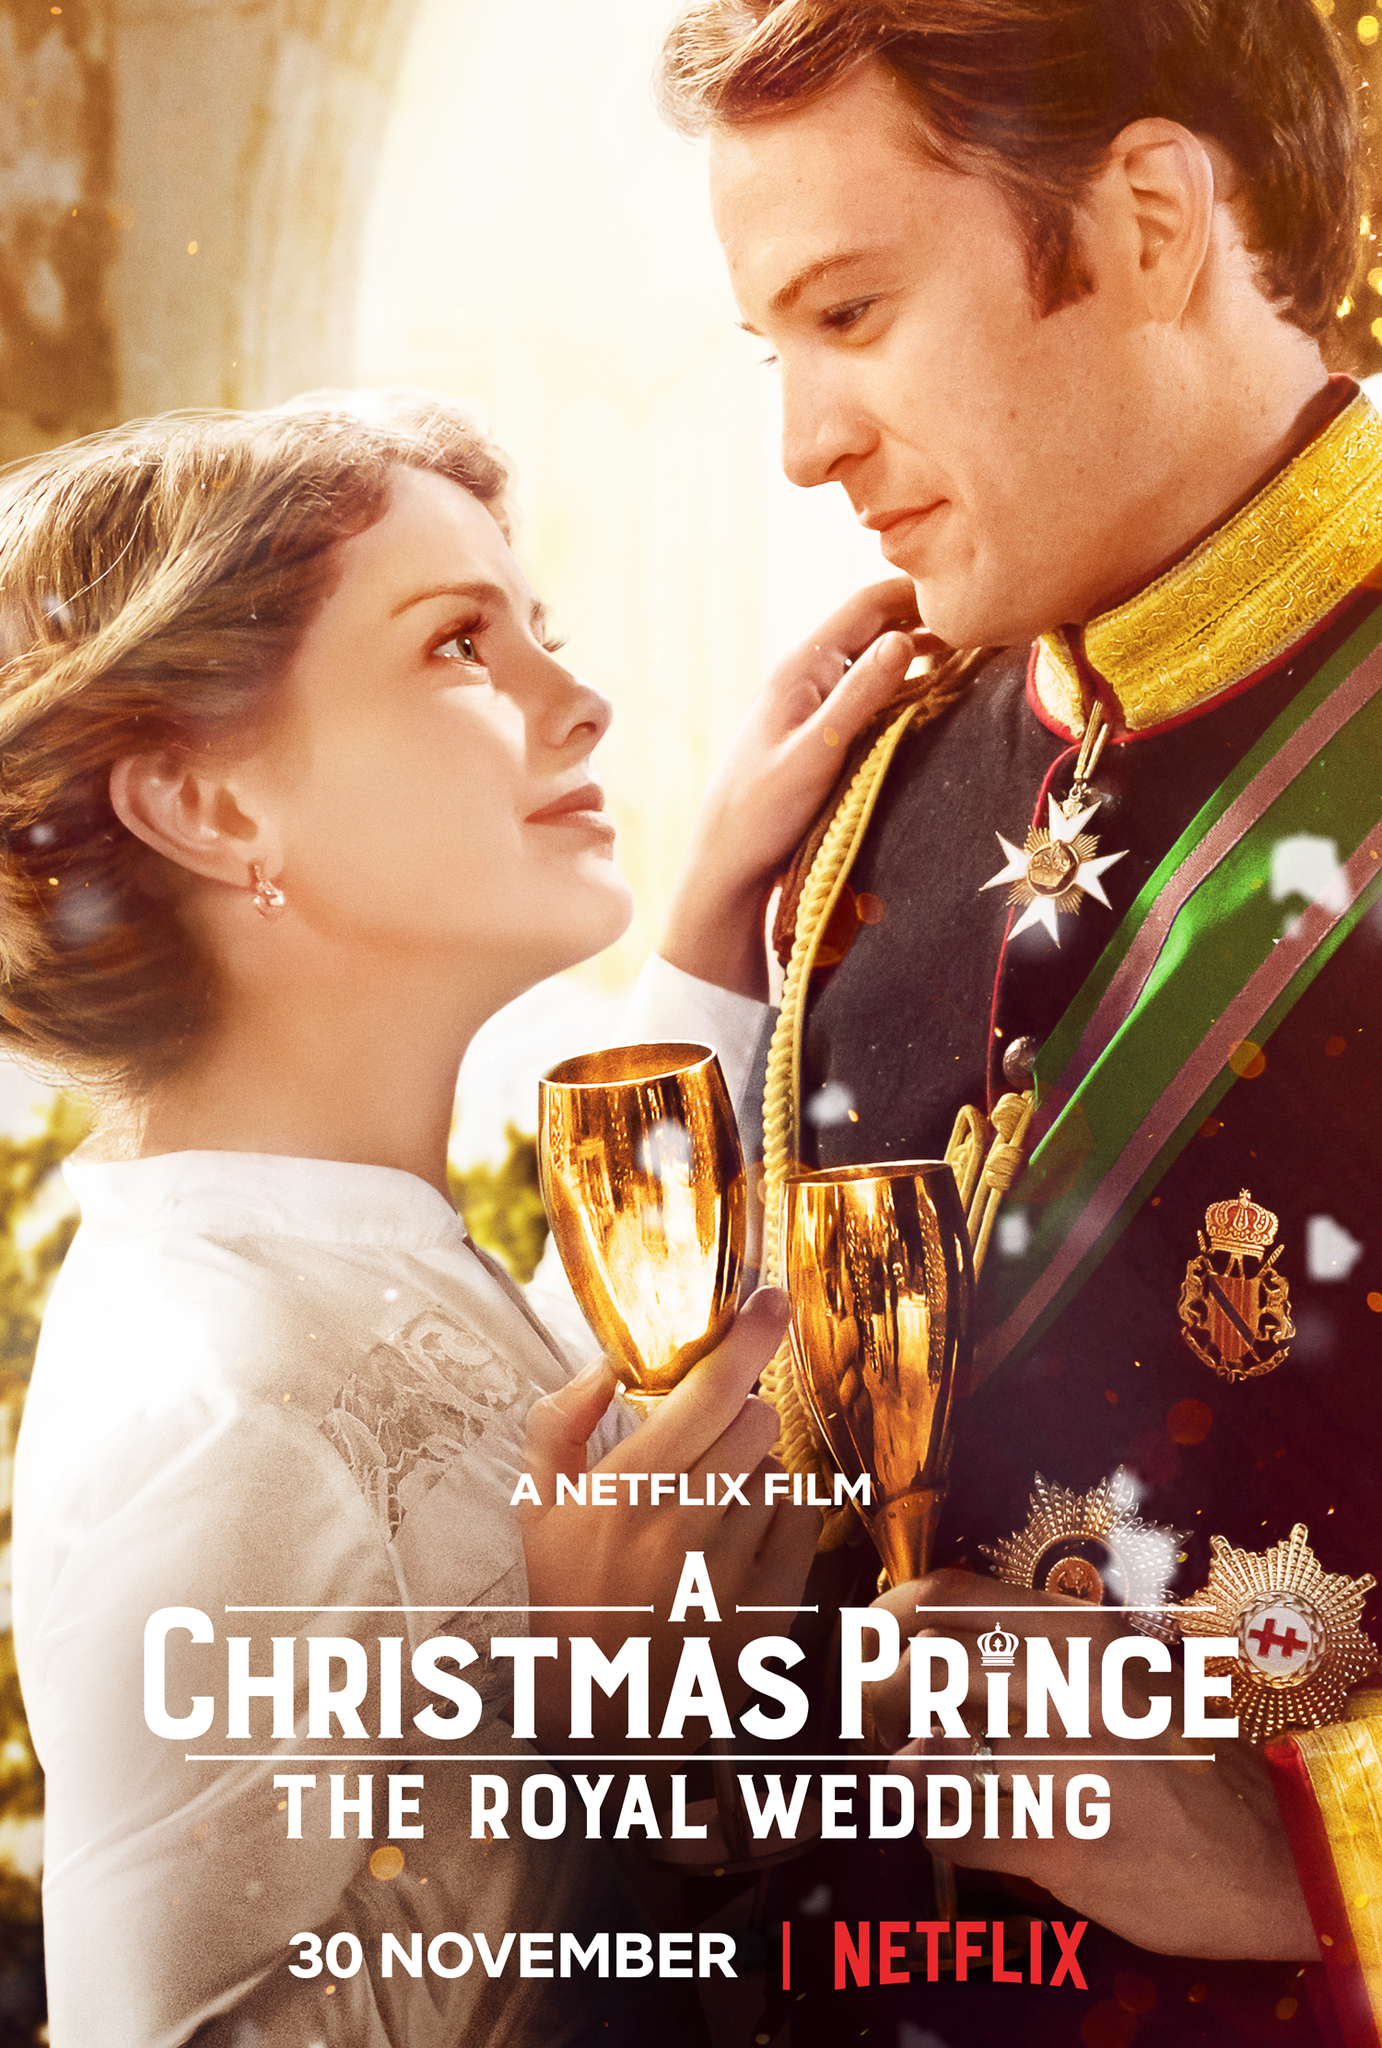 A Christmas Prince: The Royal Wedding (2018) - IMDb